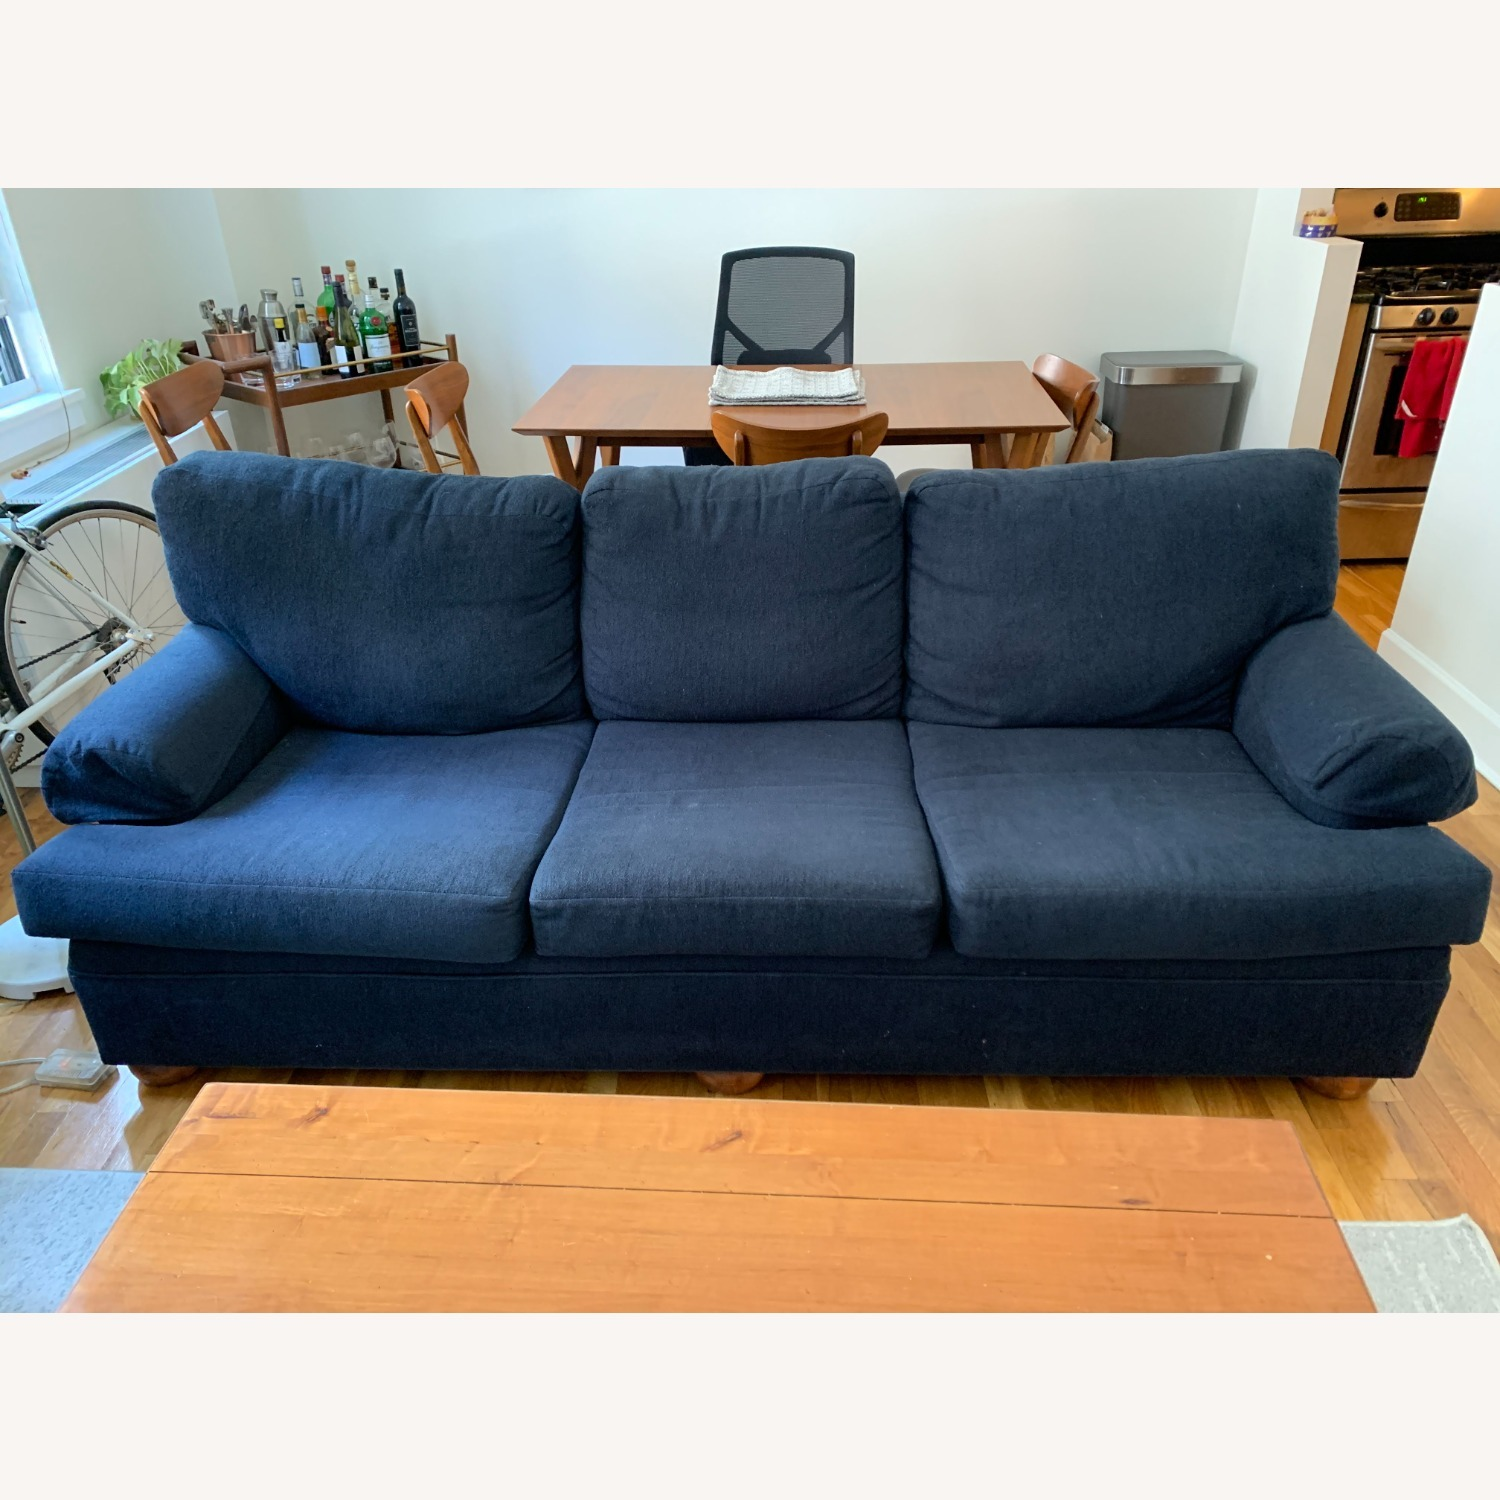 Ethan Allen Couch - image-2